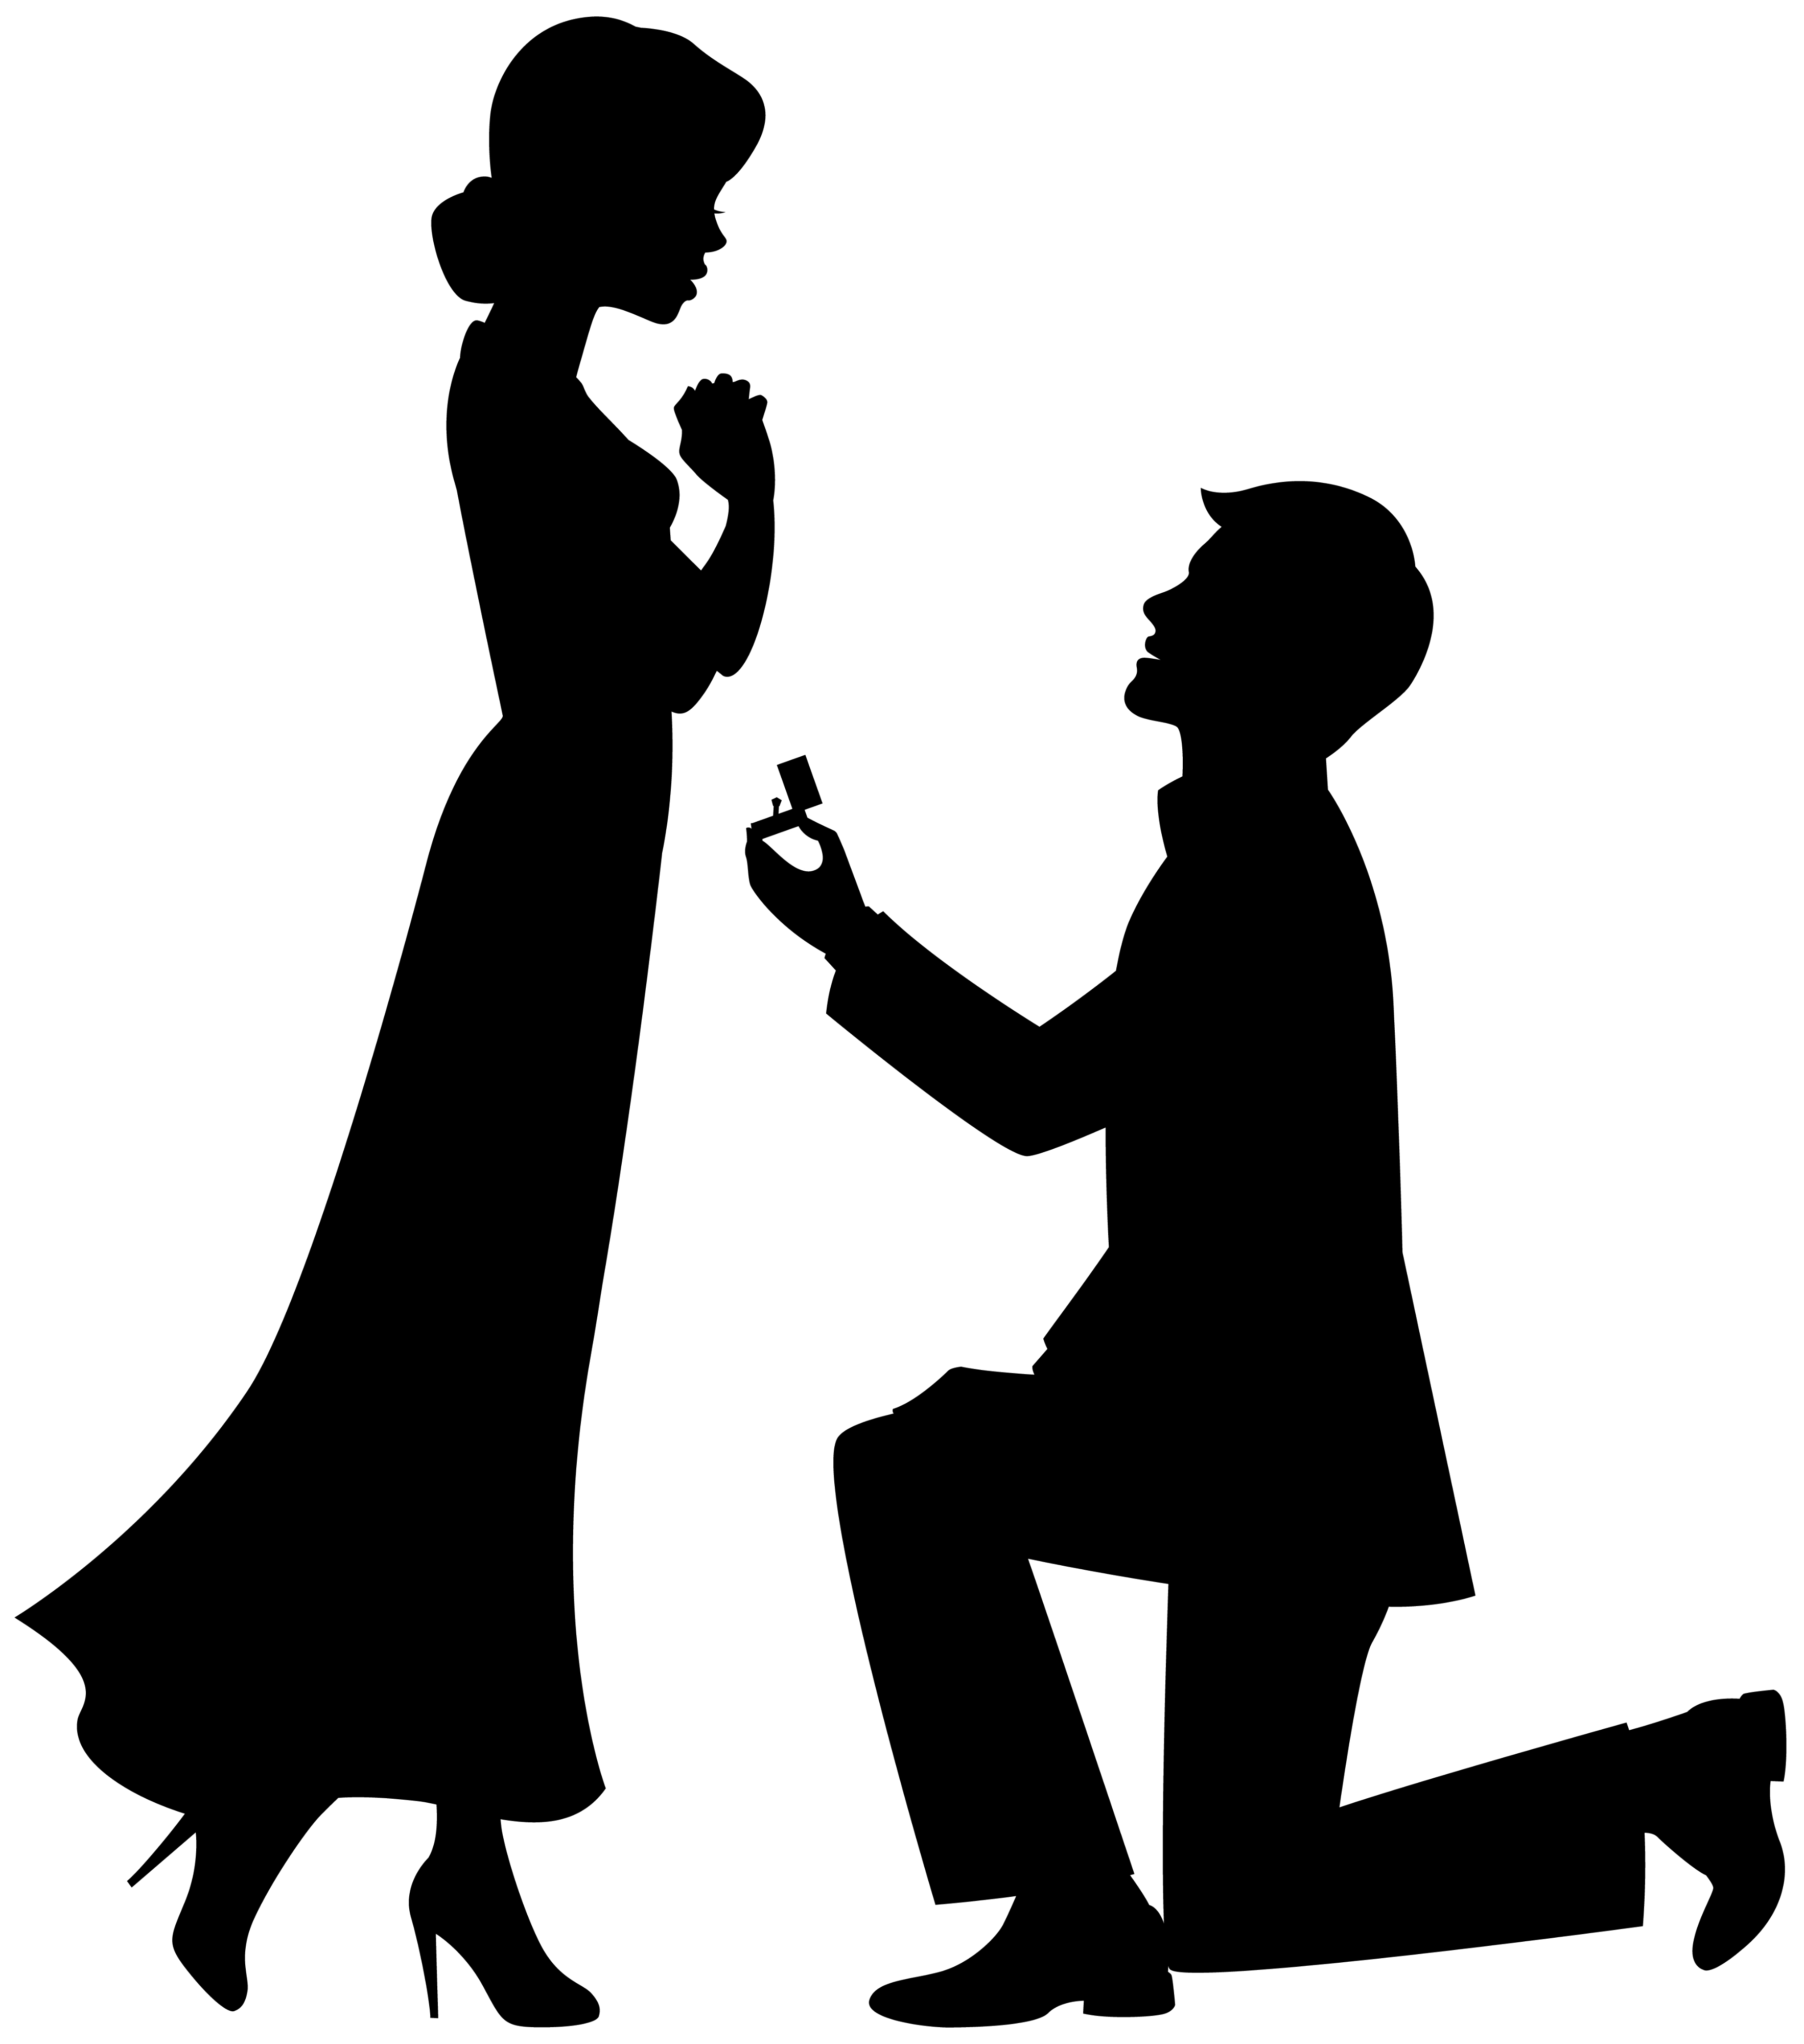 Engagement Proposal Png - Marriage proposal Drawing Engagement Clip art - others png ...